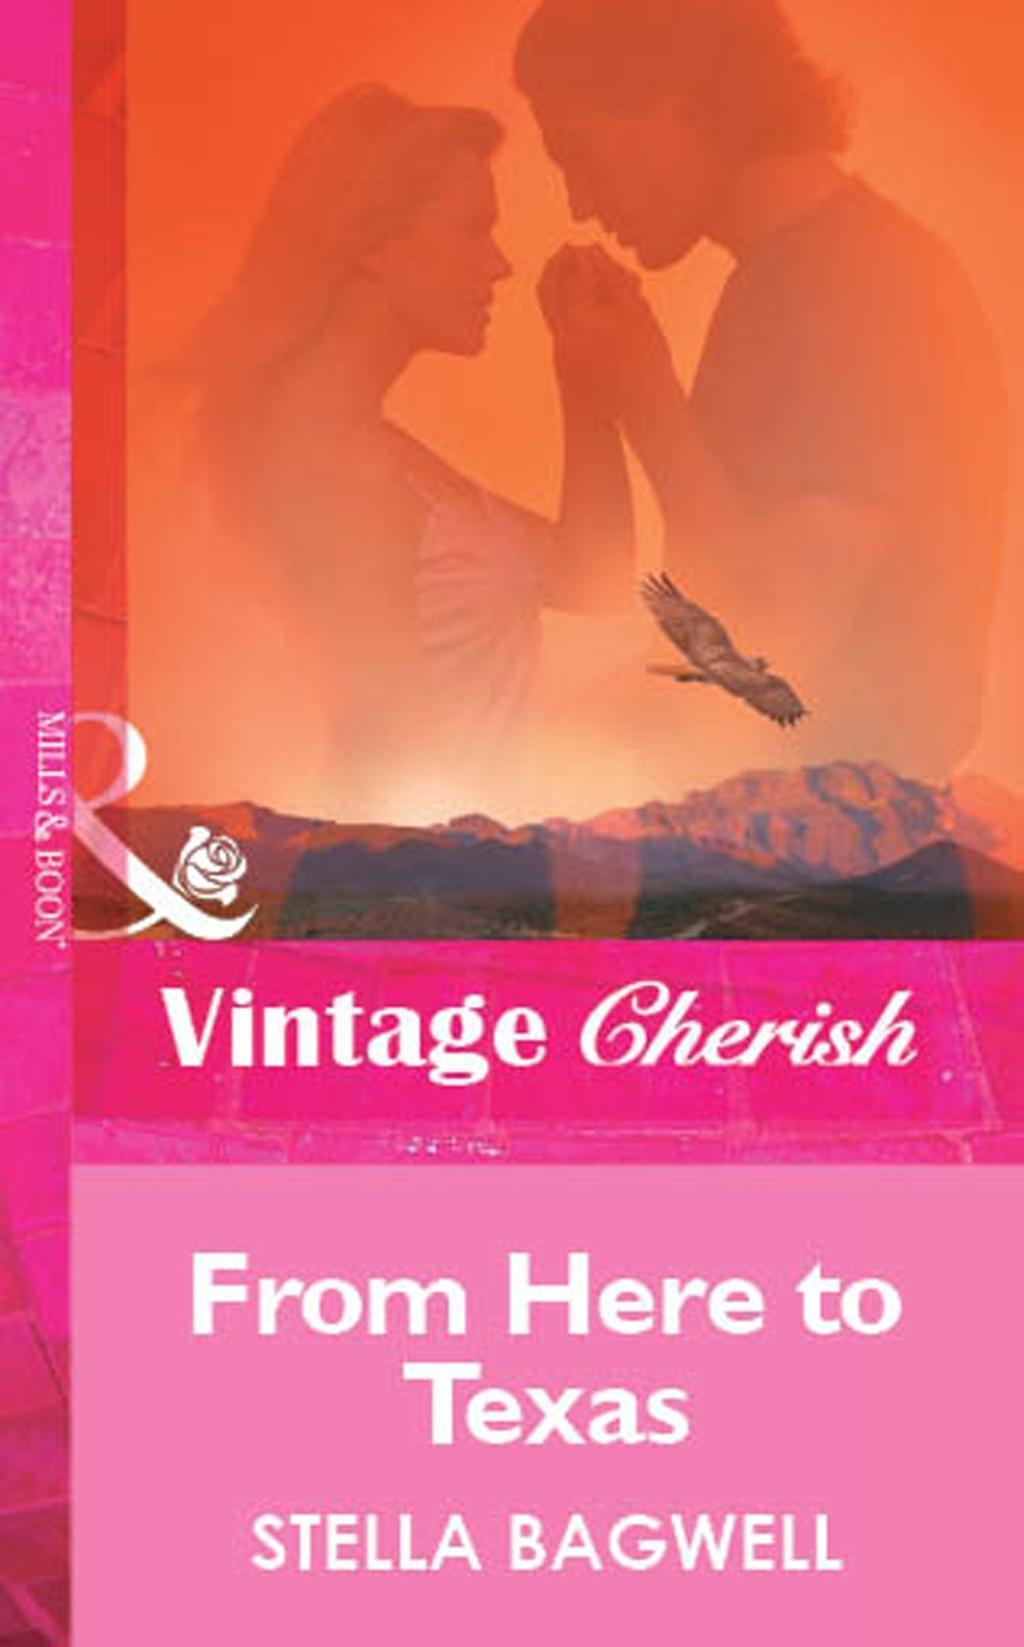 From Here to Texas (Mills & Boon Vintage Cherish)